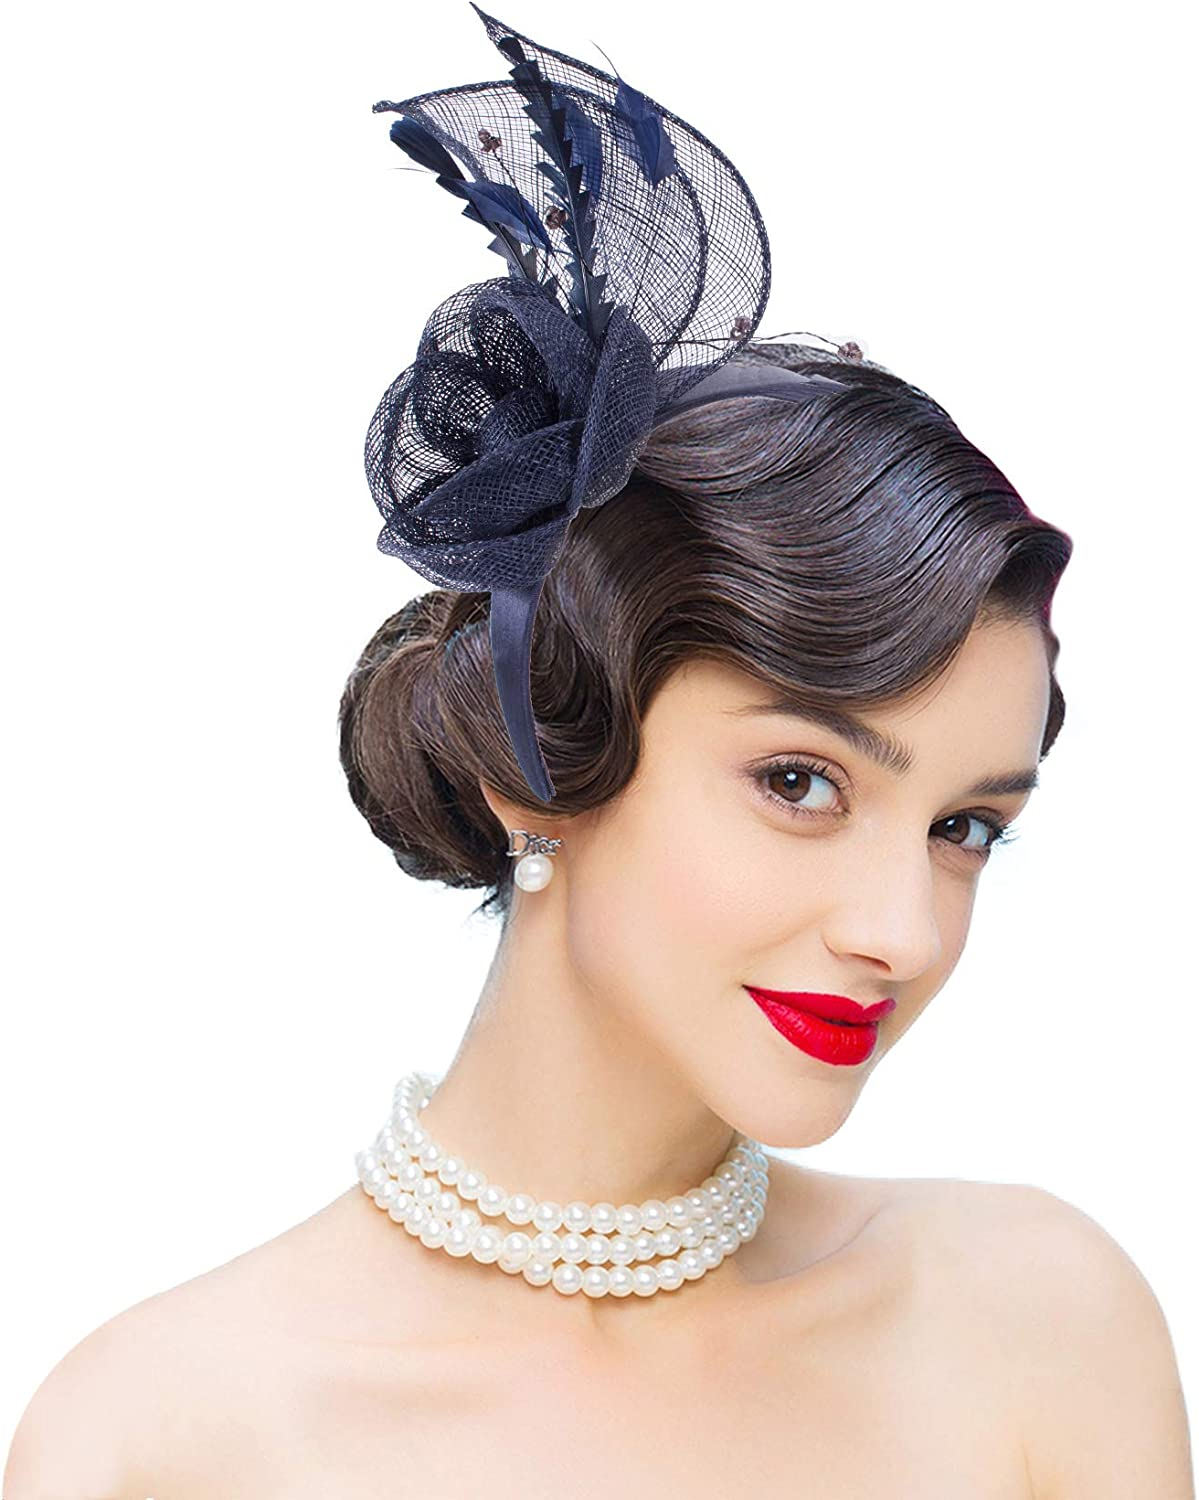 Lawliet Womens Navy Blue Sinamay Feather Floral Fascinator Headpiece T344